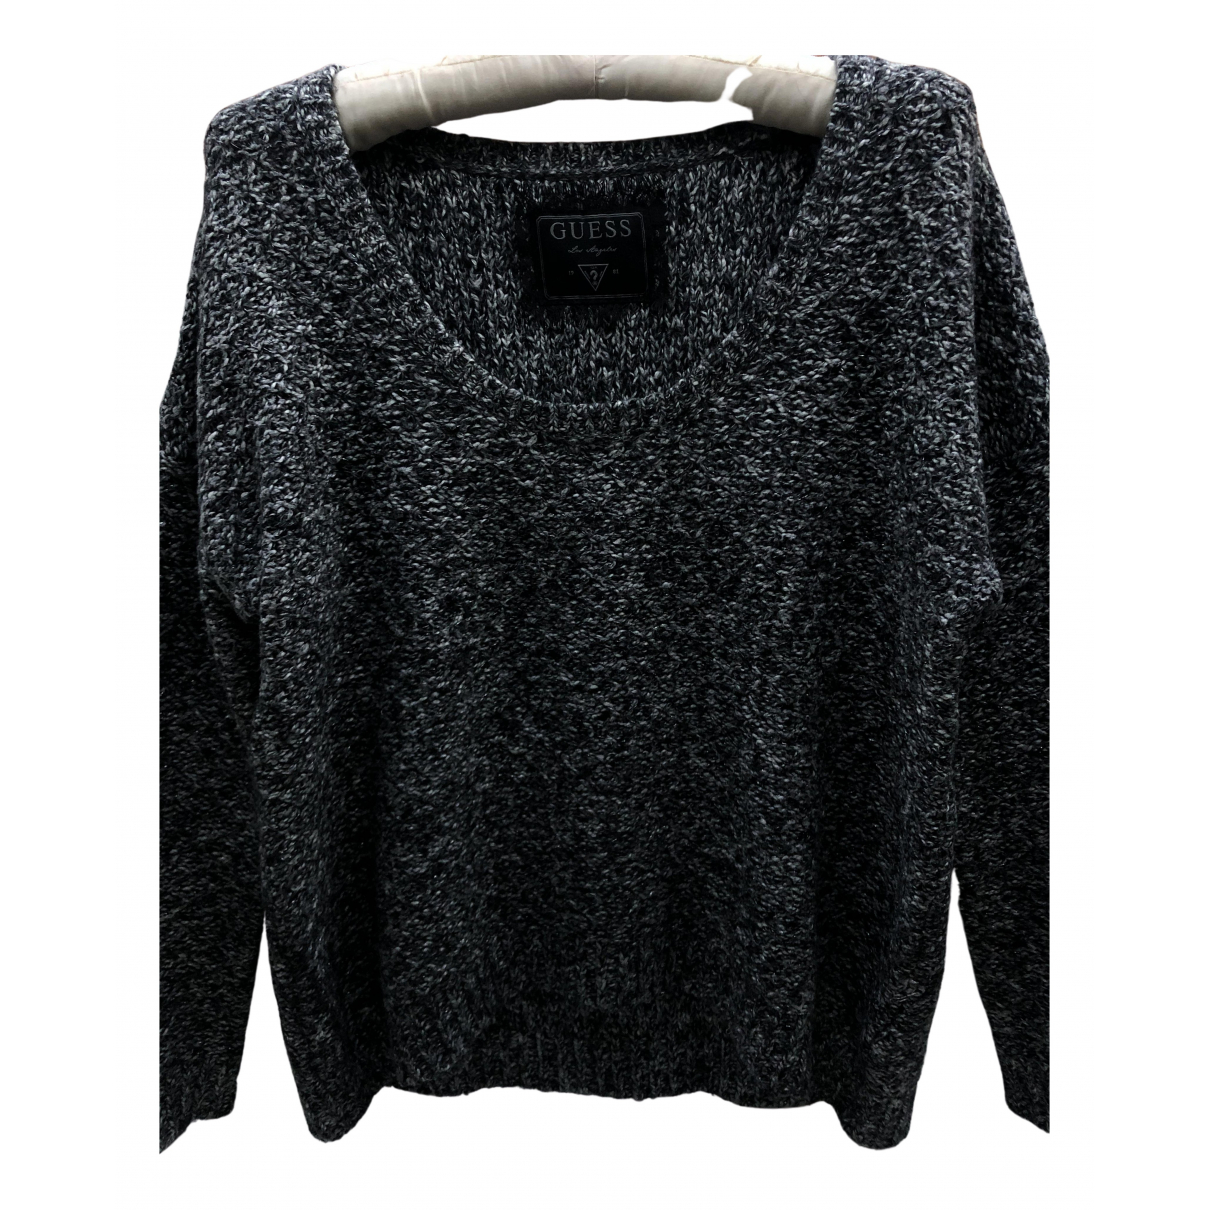 Guess \N Grey Knitwear for Women S International